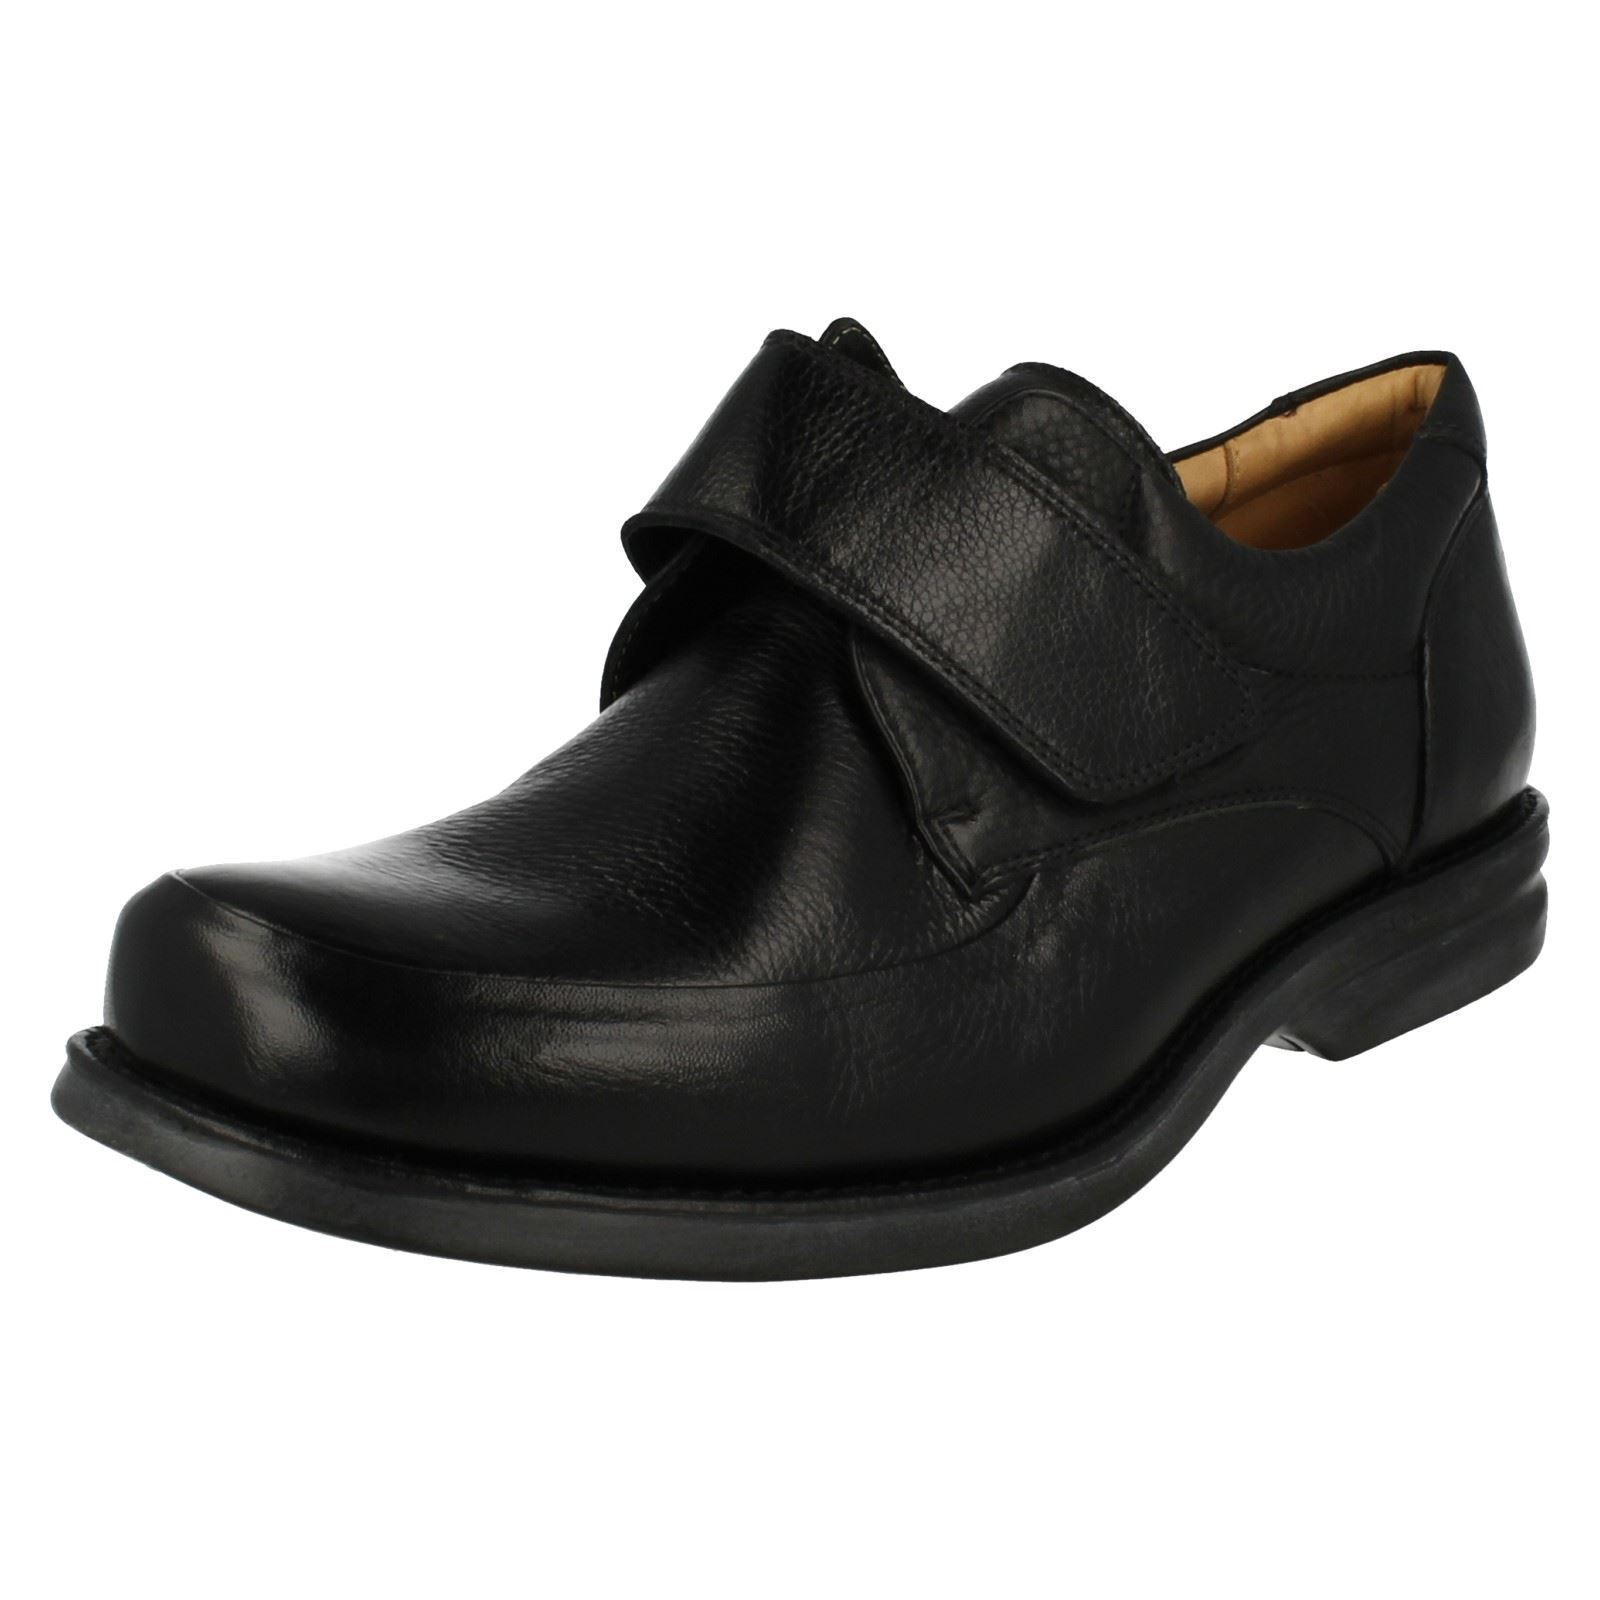 Homme TAPAJOS Rond Cuir Bout Rond TAPAJOS Riptape Sangle Chaussure par Anatomic & Co 99.00 £ fd7f12